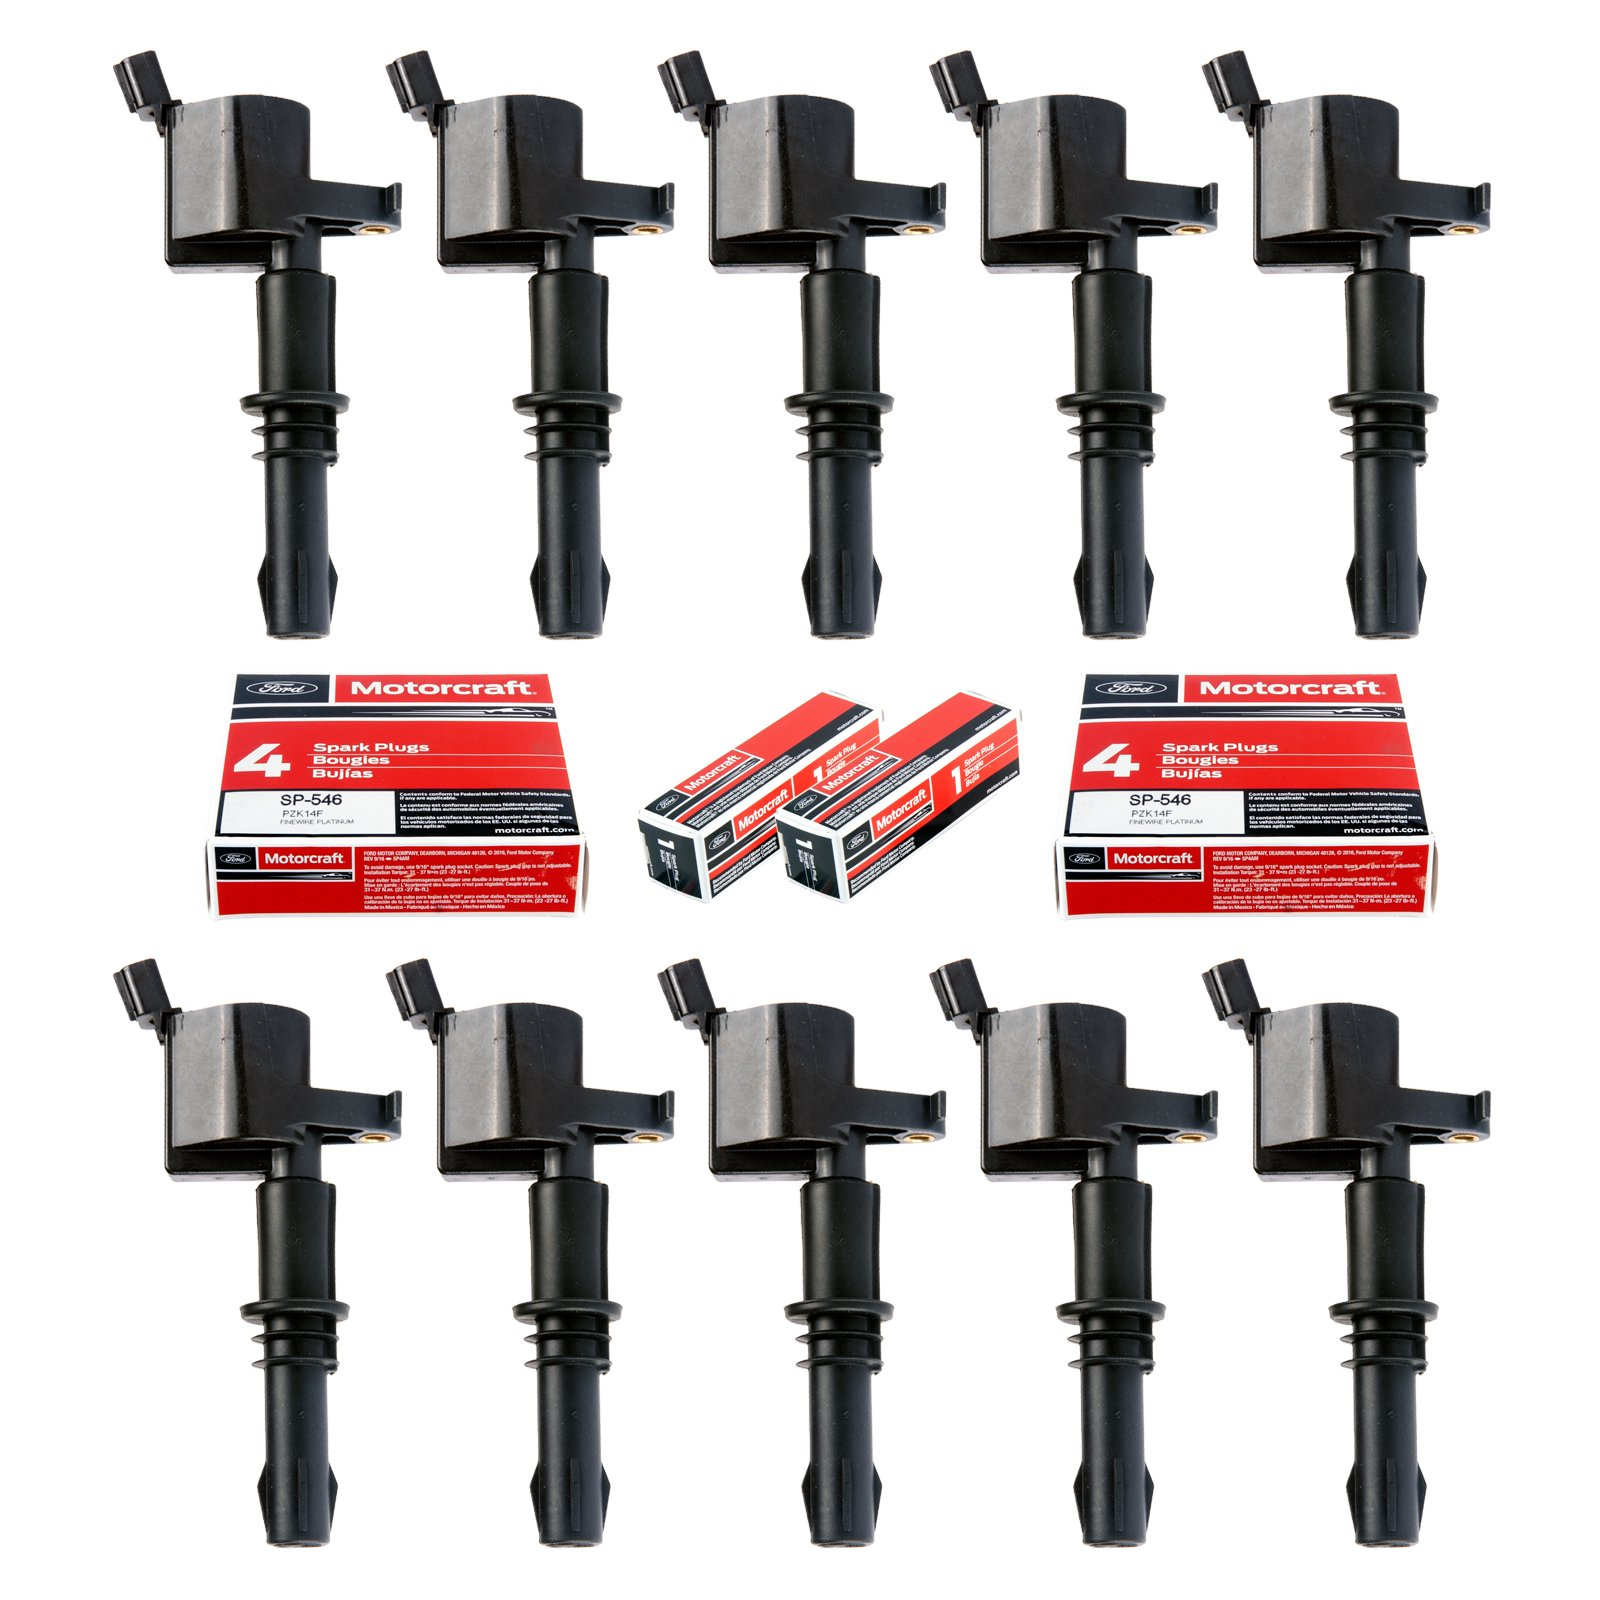 Set of 10 Motorcraft SP515 SP546 Spark Plugs and 10 Straight Boot Ignition Coils DG511 for Ford Lincoln Mercury V8 V10 4.6l 5.4l 6.8l Compatible with 3L3E12A366CA 5C1584 C1541 FD-508 UF-537 DQ50101D by King Auto Parts